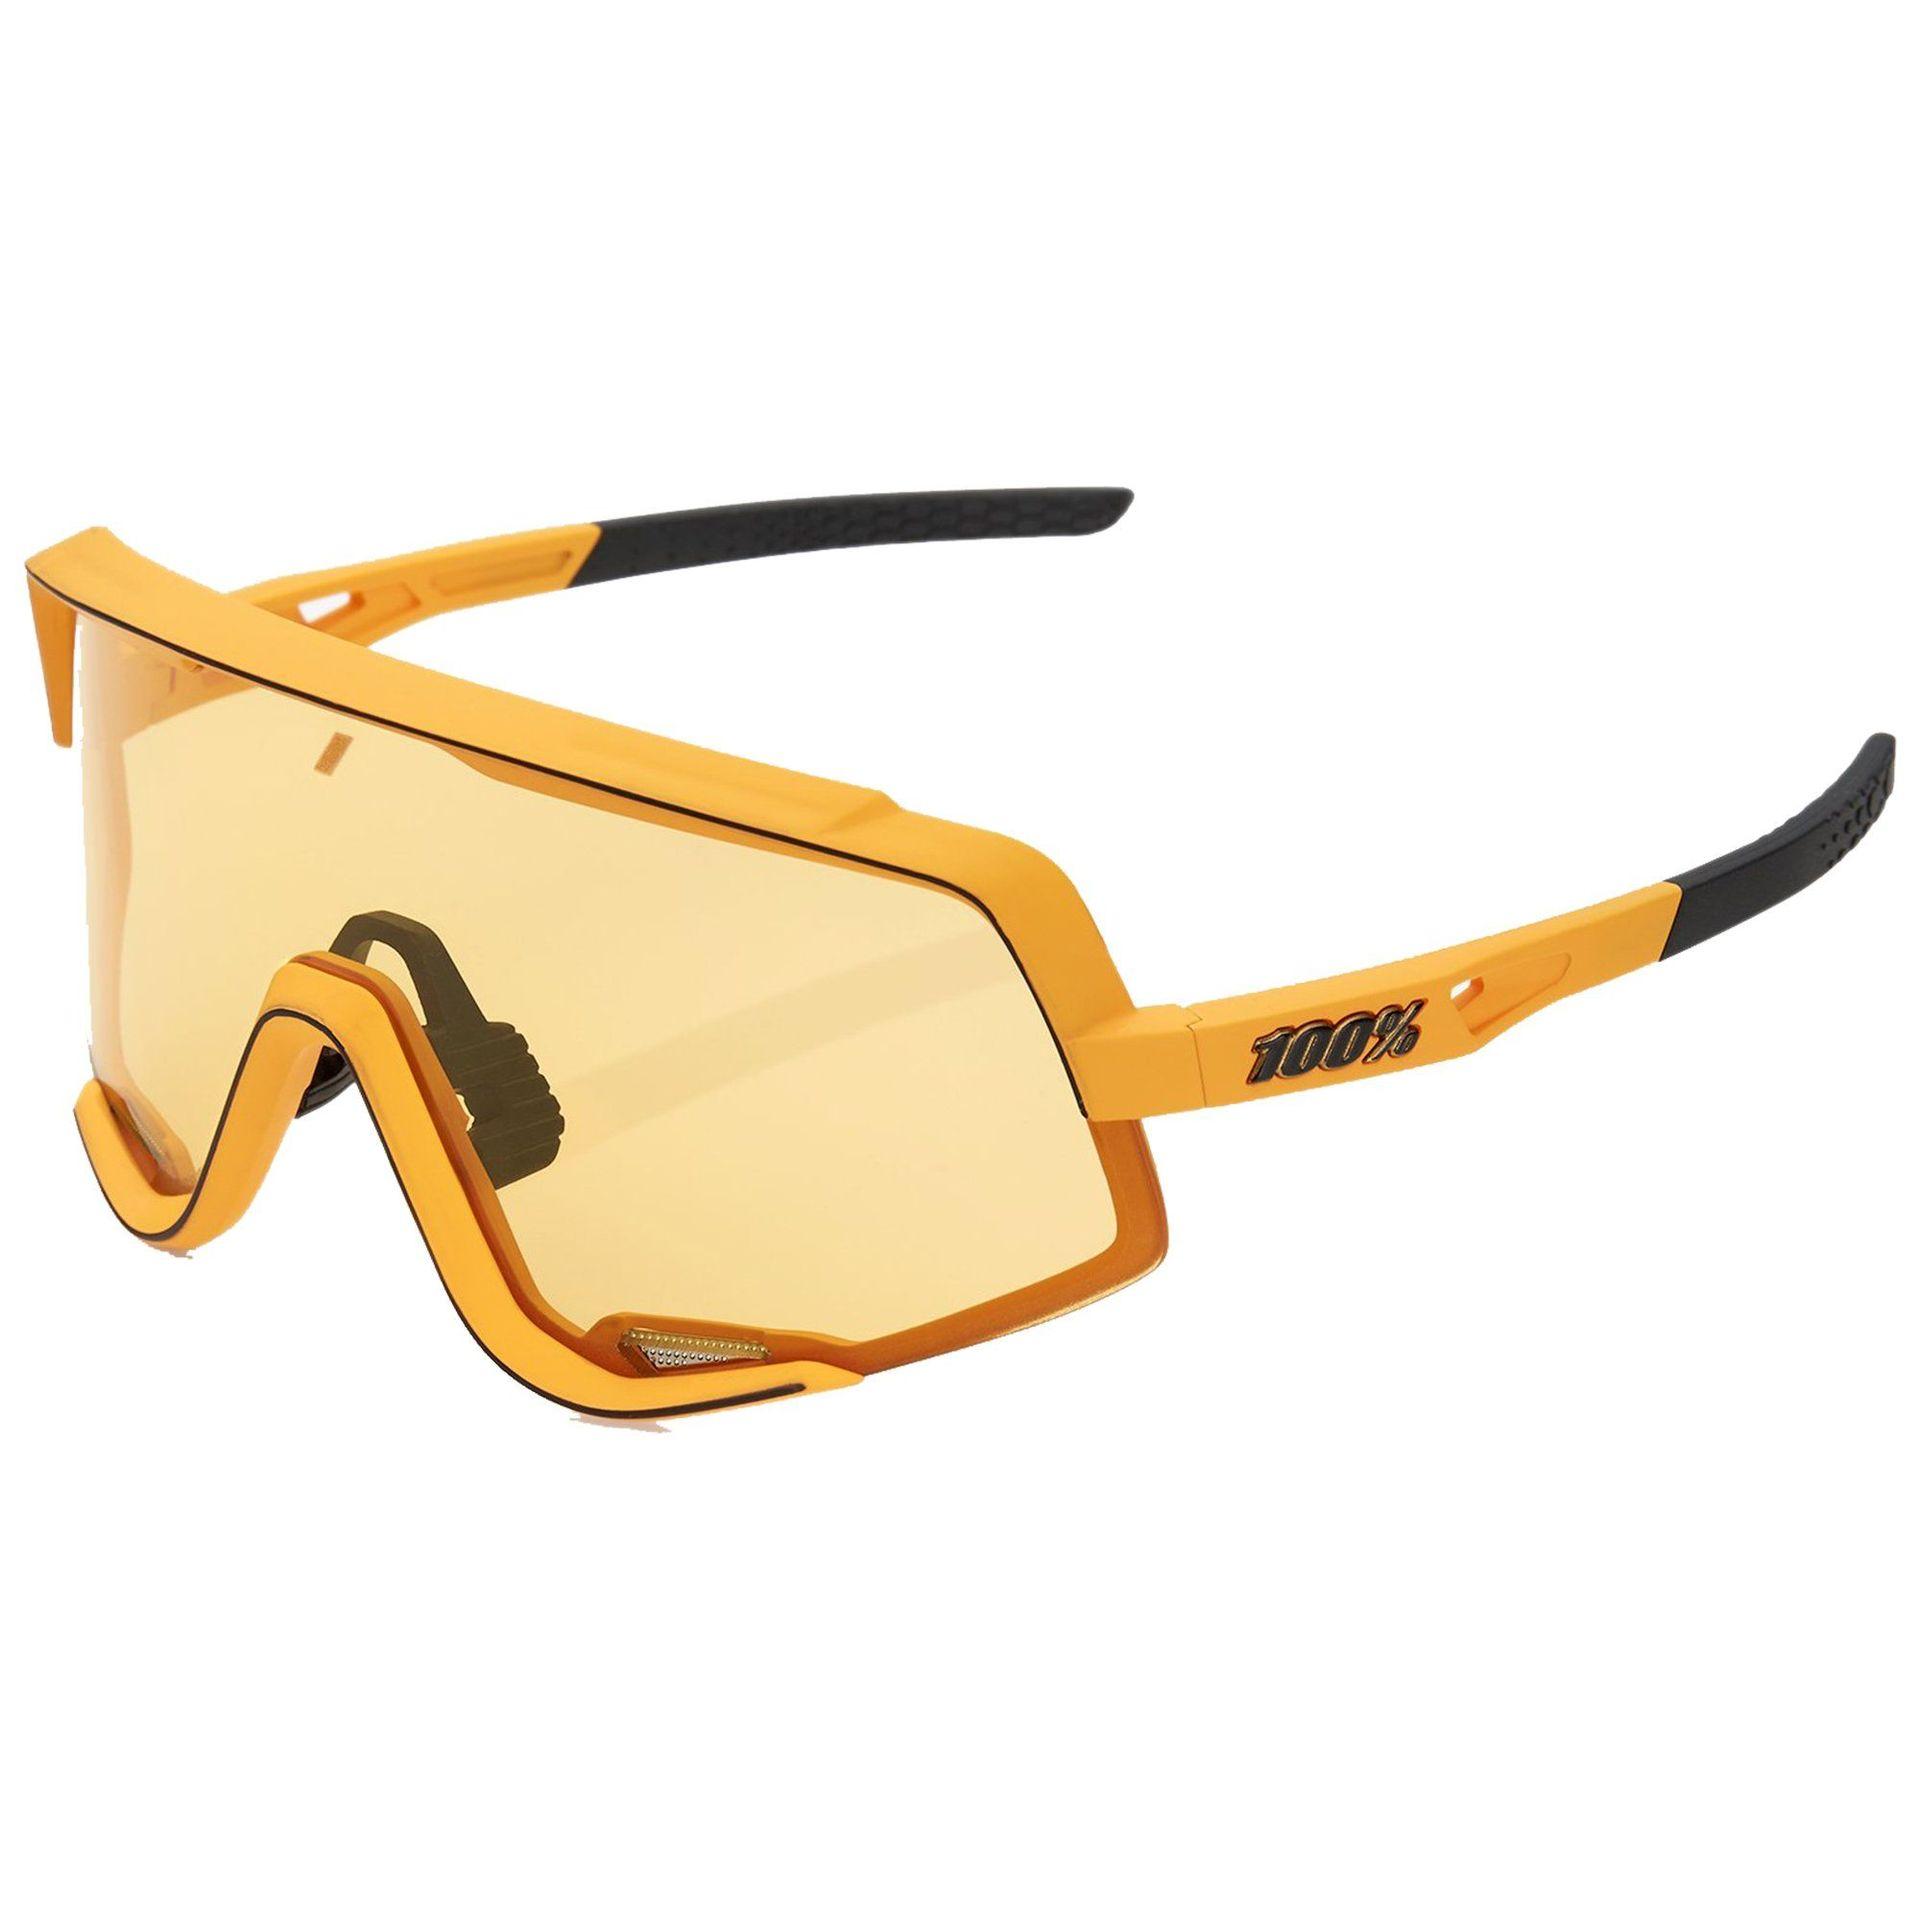 OKULARY 100% GLENDALE SOFT TACT MUSTARD|SOFT YELLOW 1